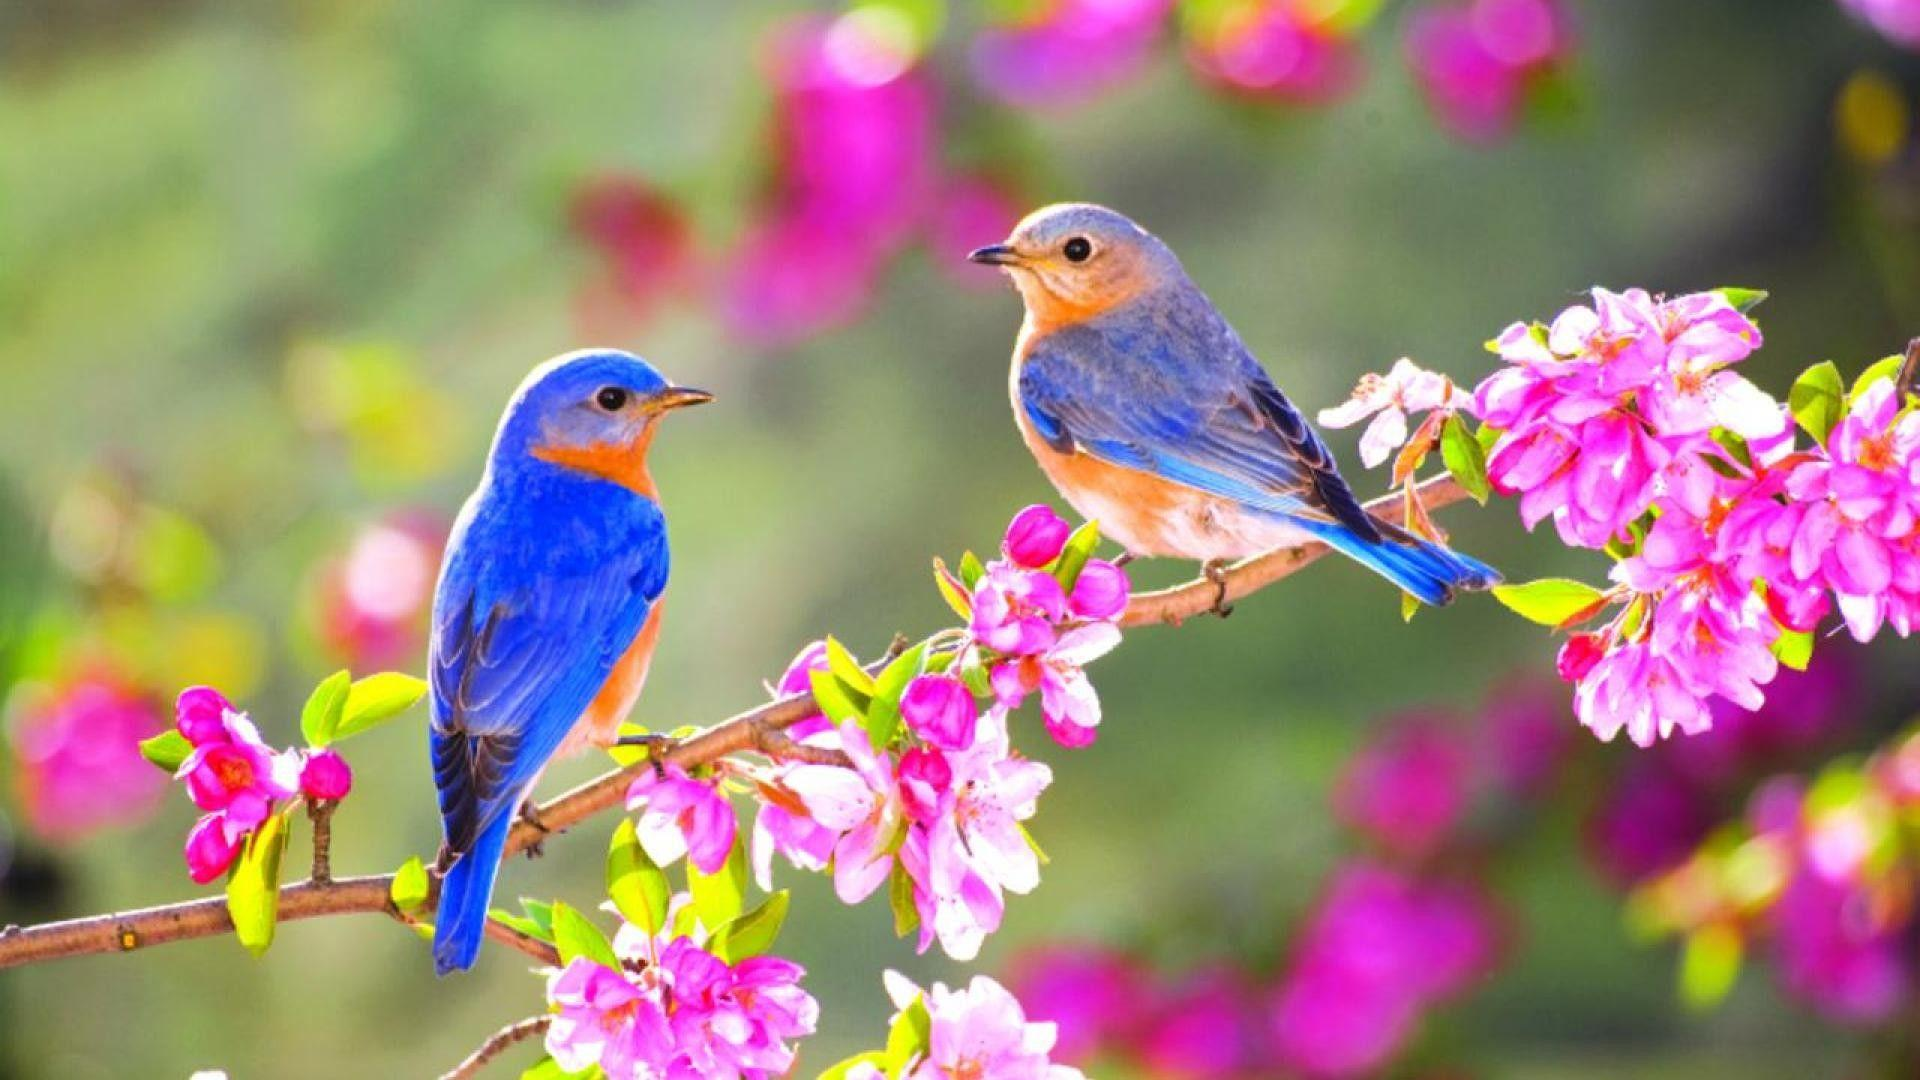 Bird Wallpapers For Desktop Wallpaper Cave